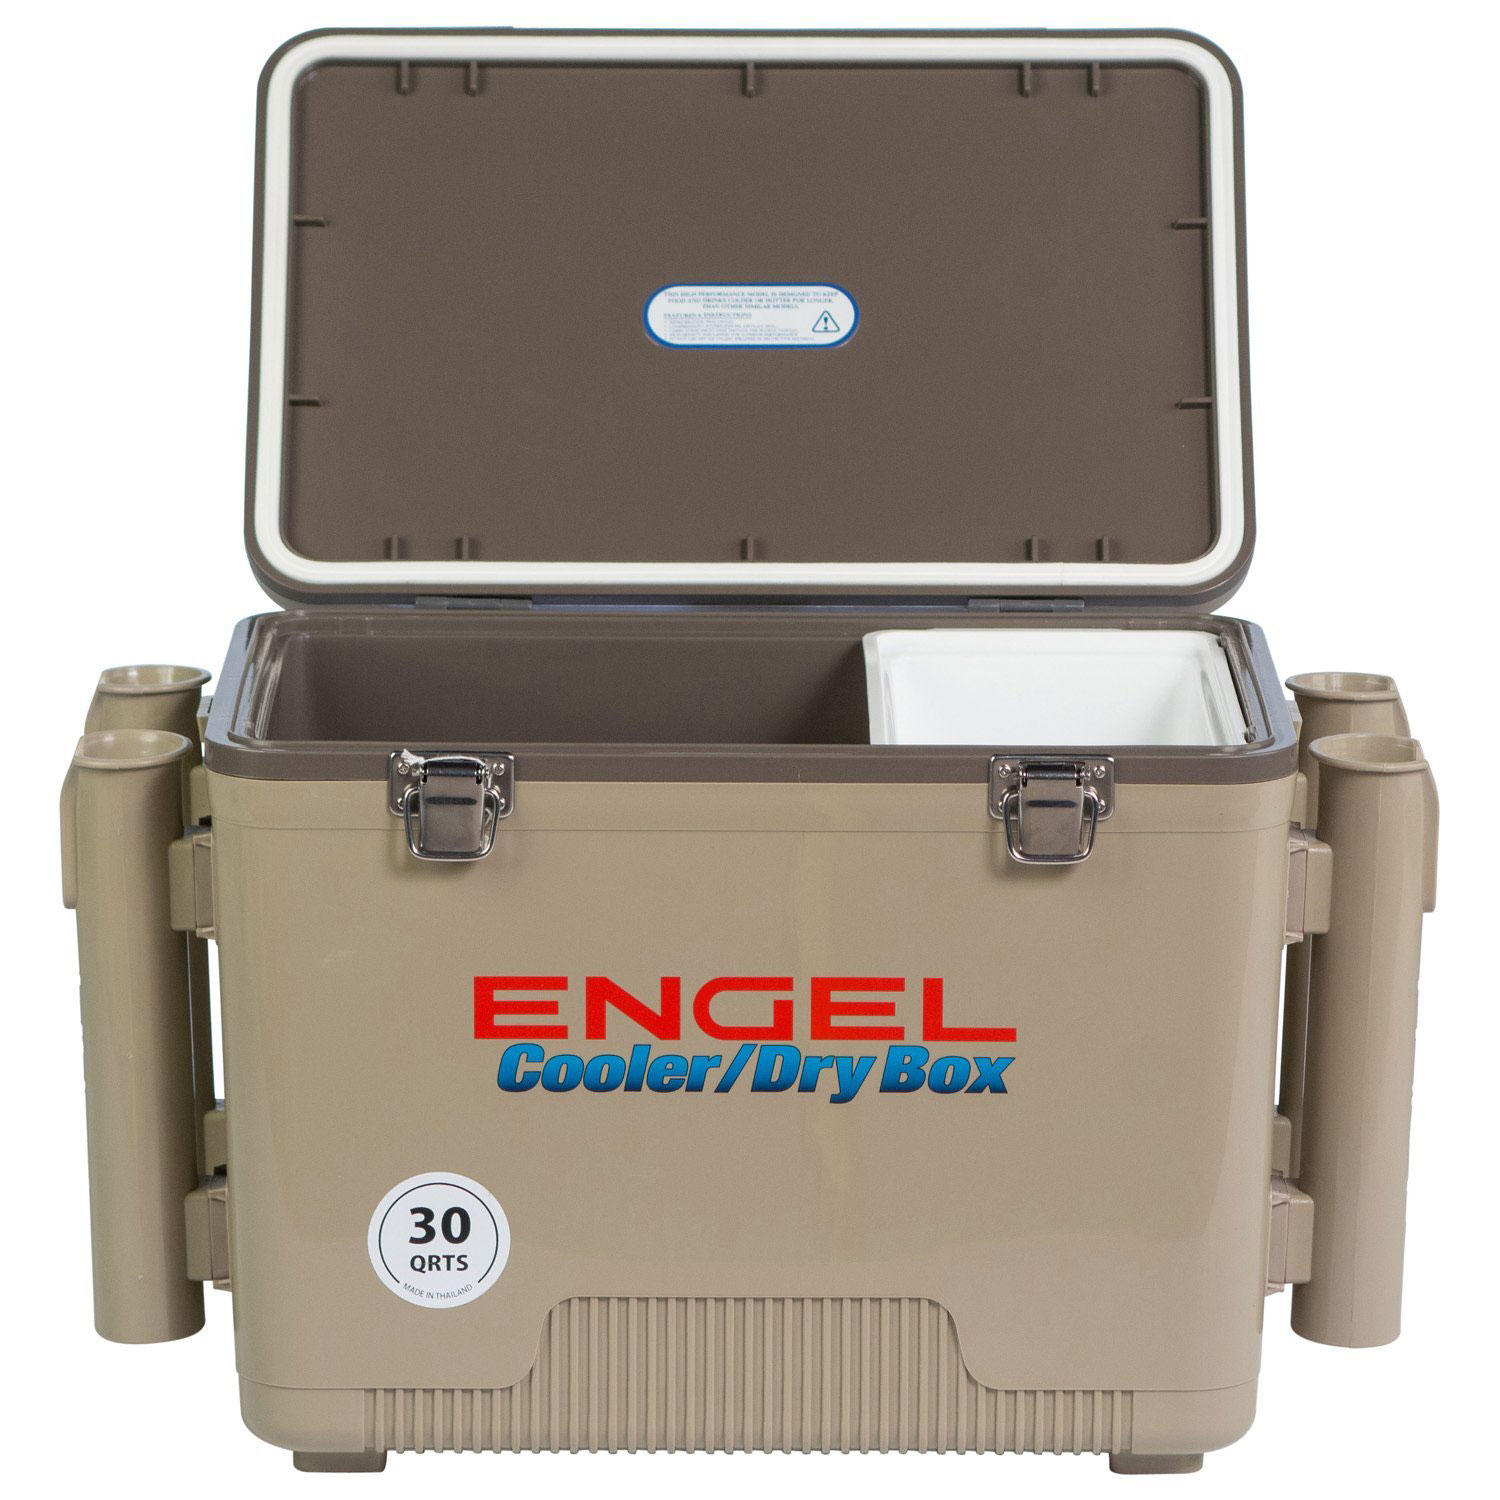 Engel Coolers 30 Quart Leak Proof Insulated Drybox with 4 Rod Holders (2 Pack)